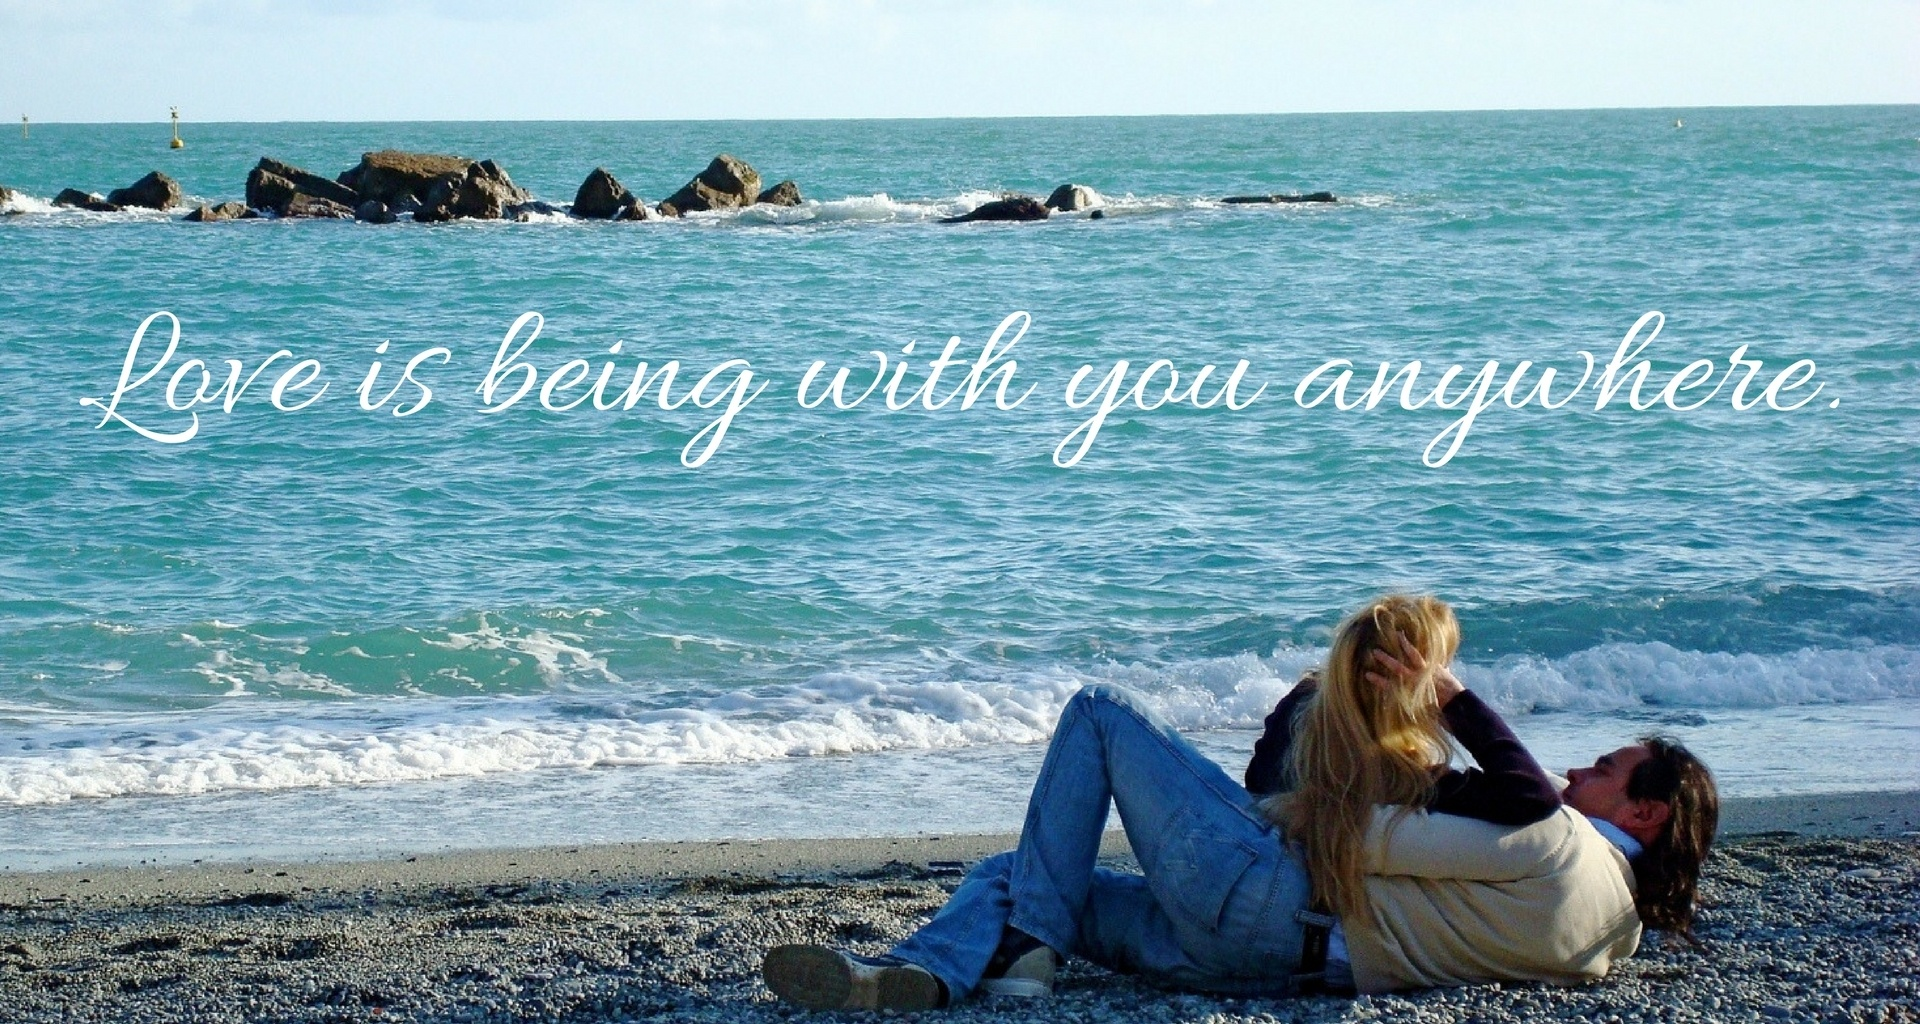 60559c174b 101 Of The Best Couple Travel Quotes - Simply Travelled